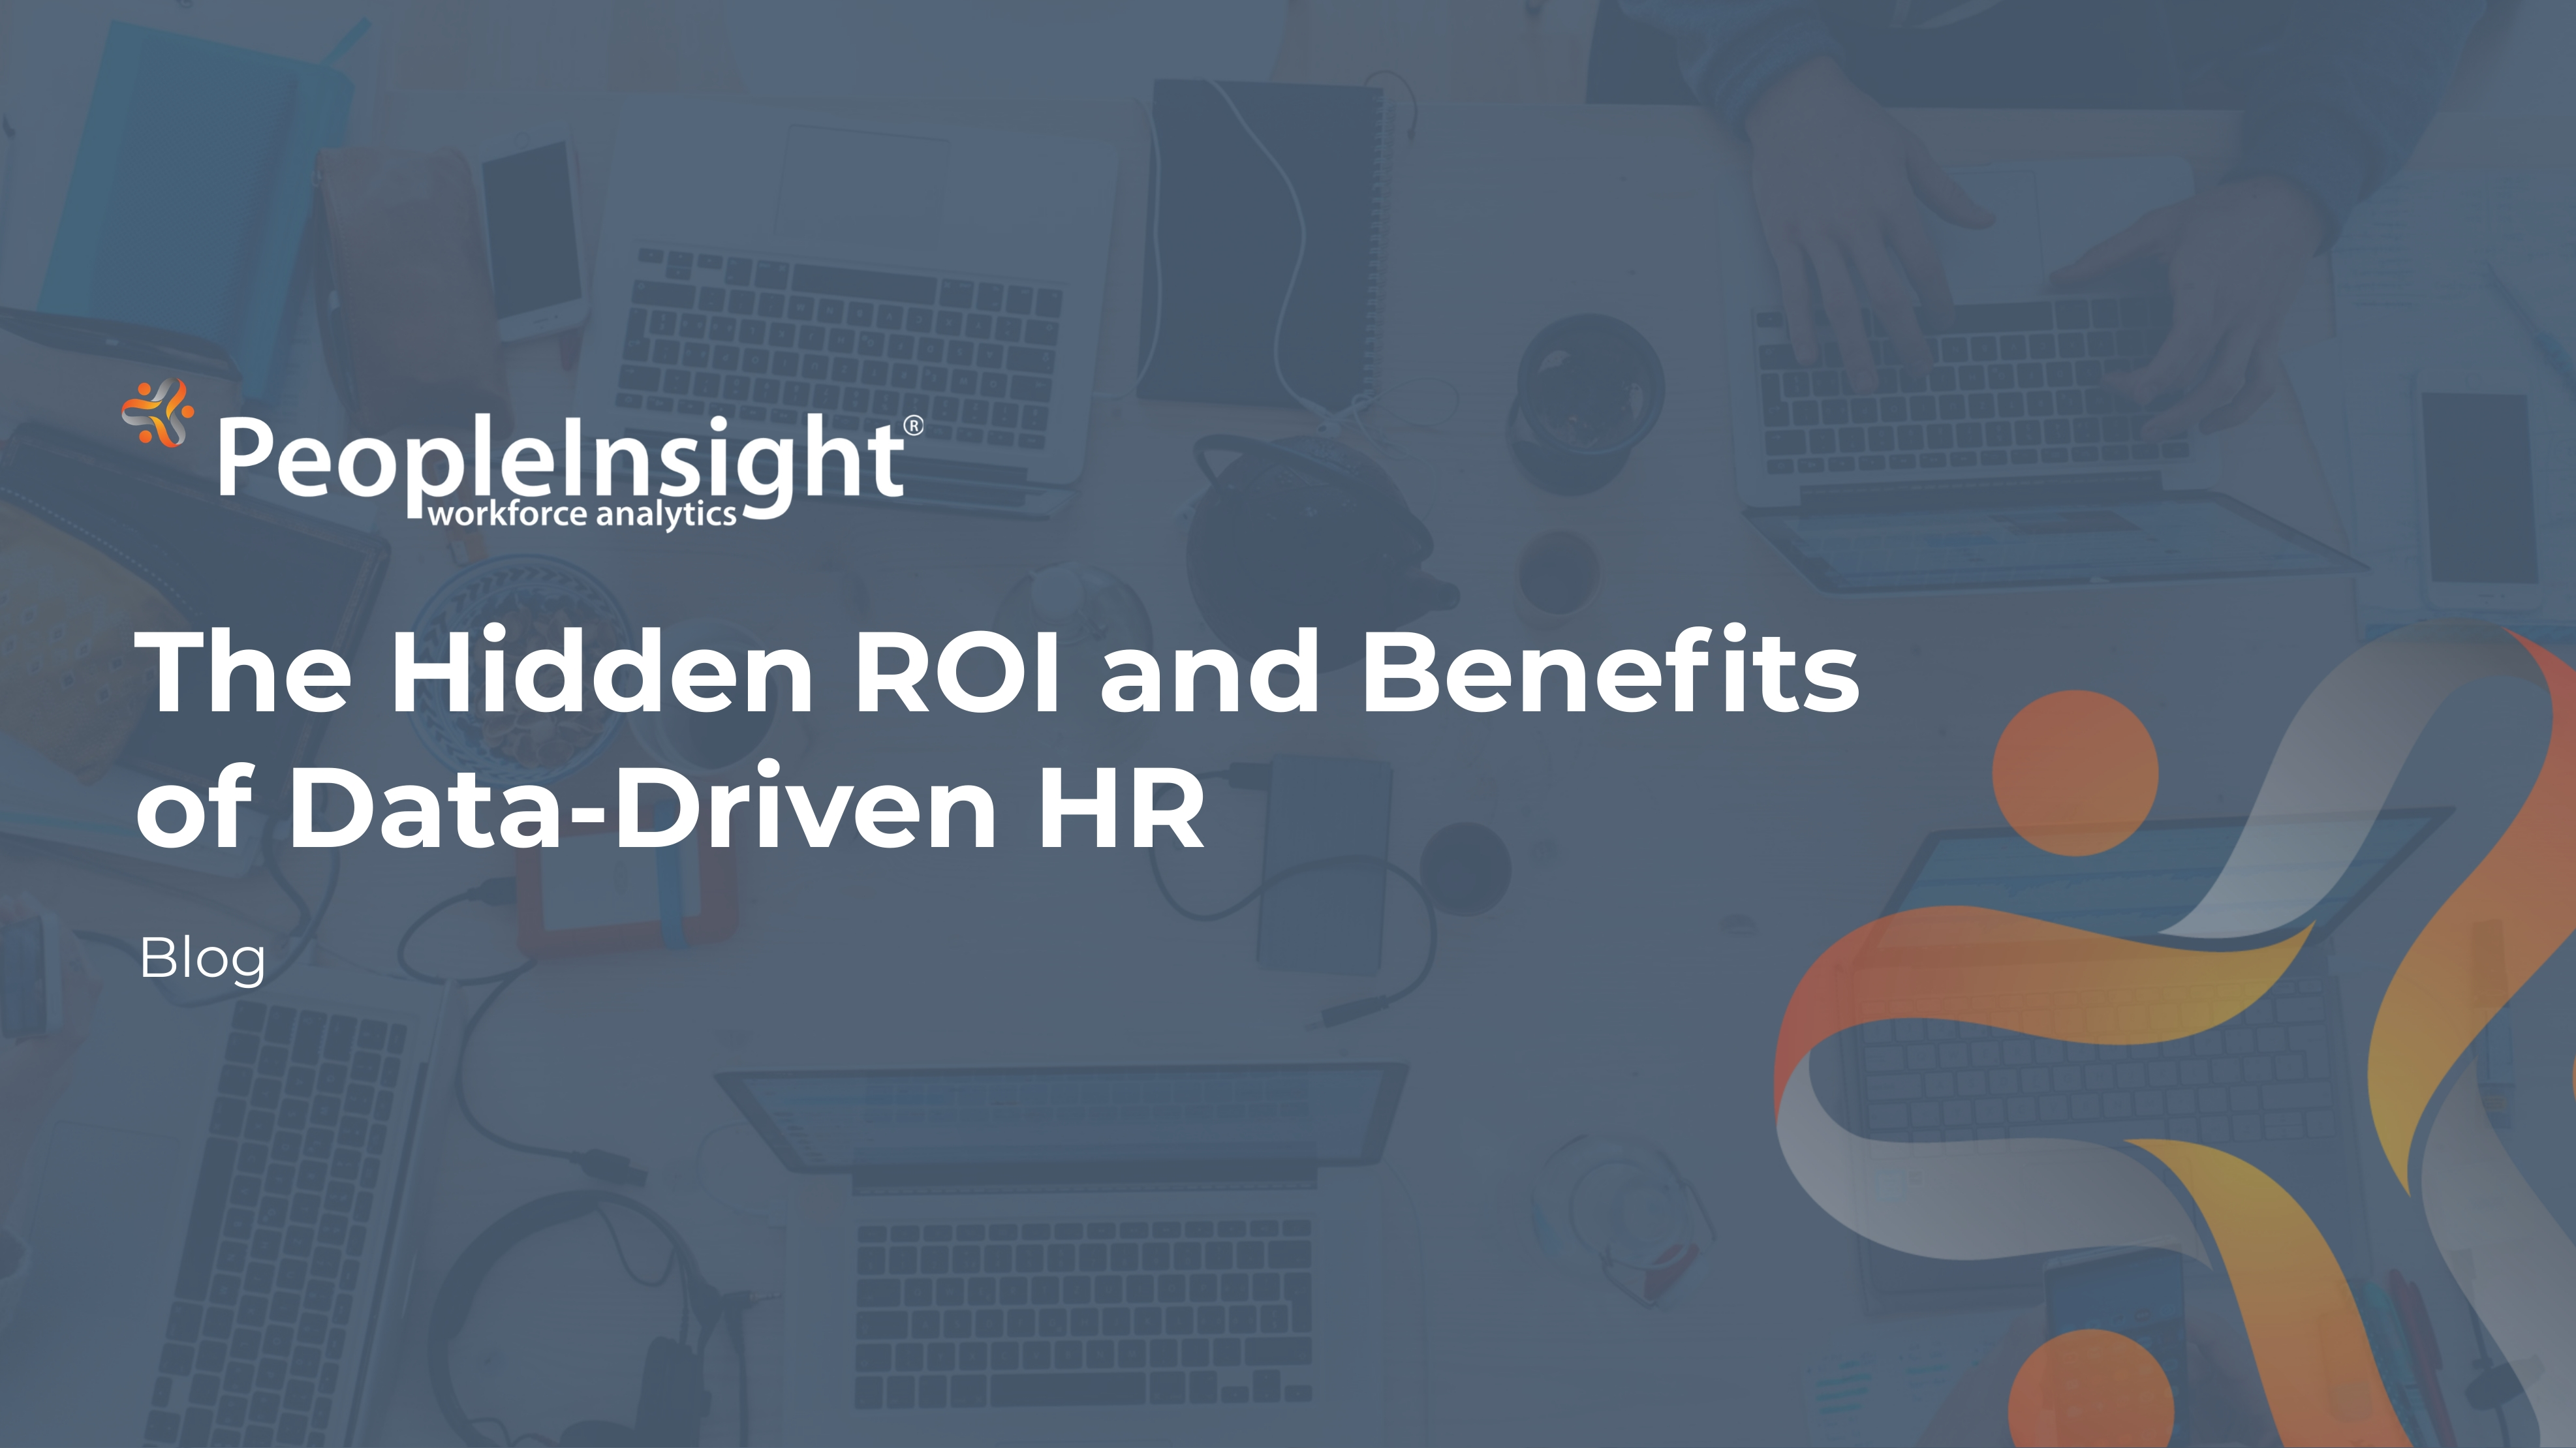 The Hidden ROI and Benefits of Data-Driven HR